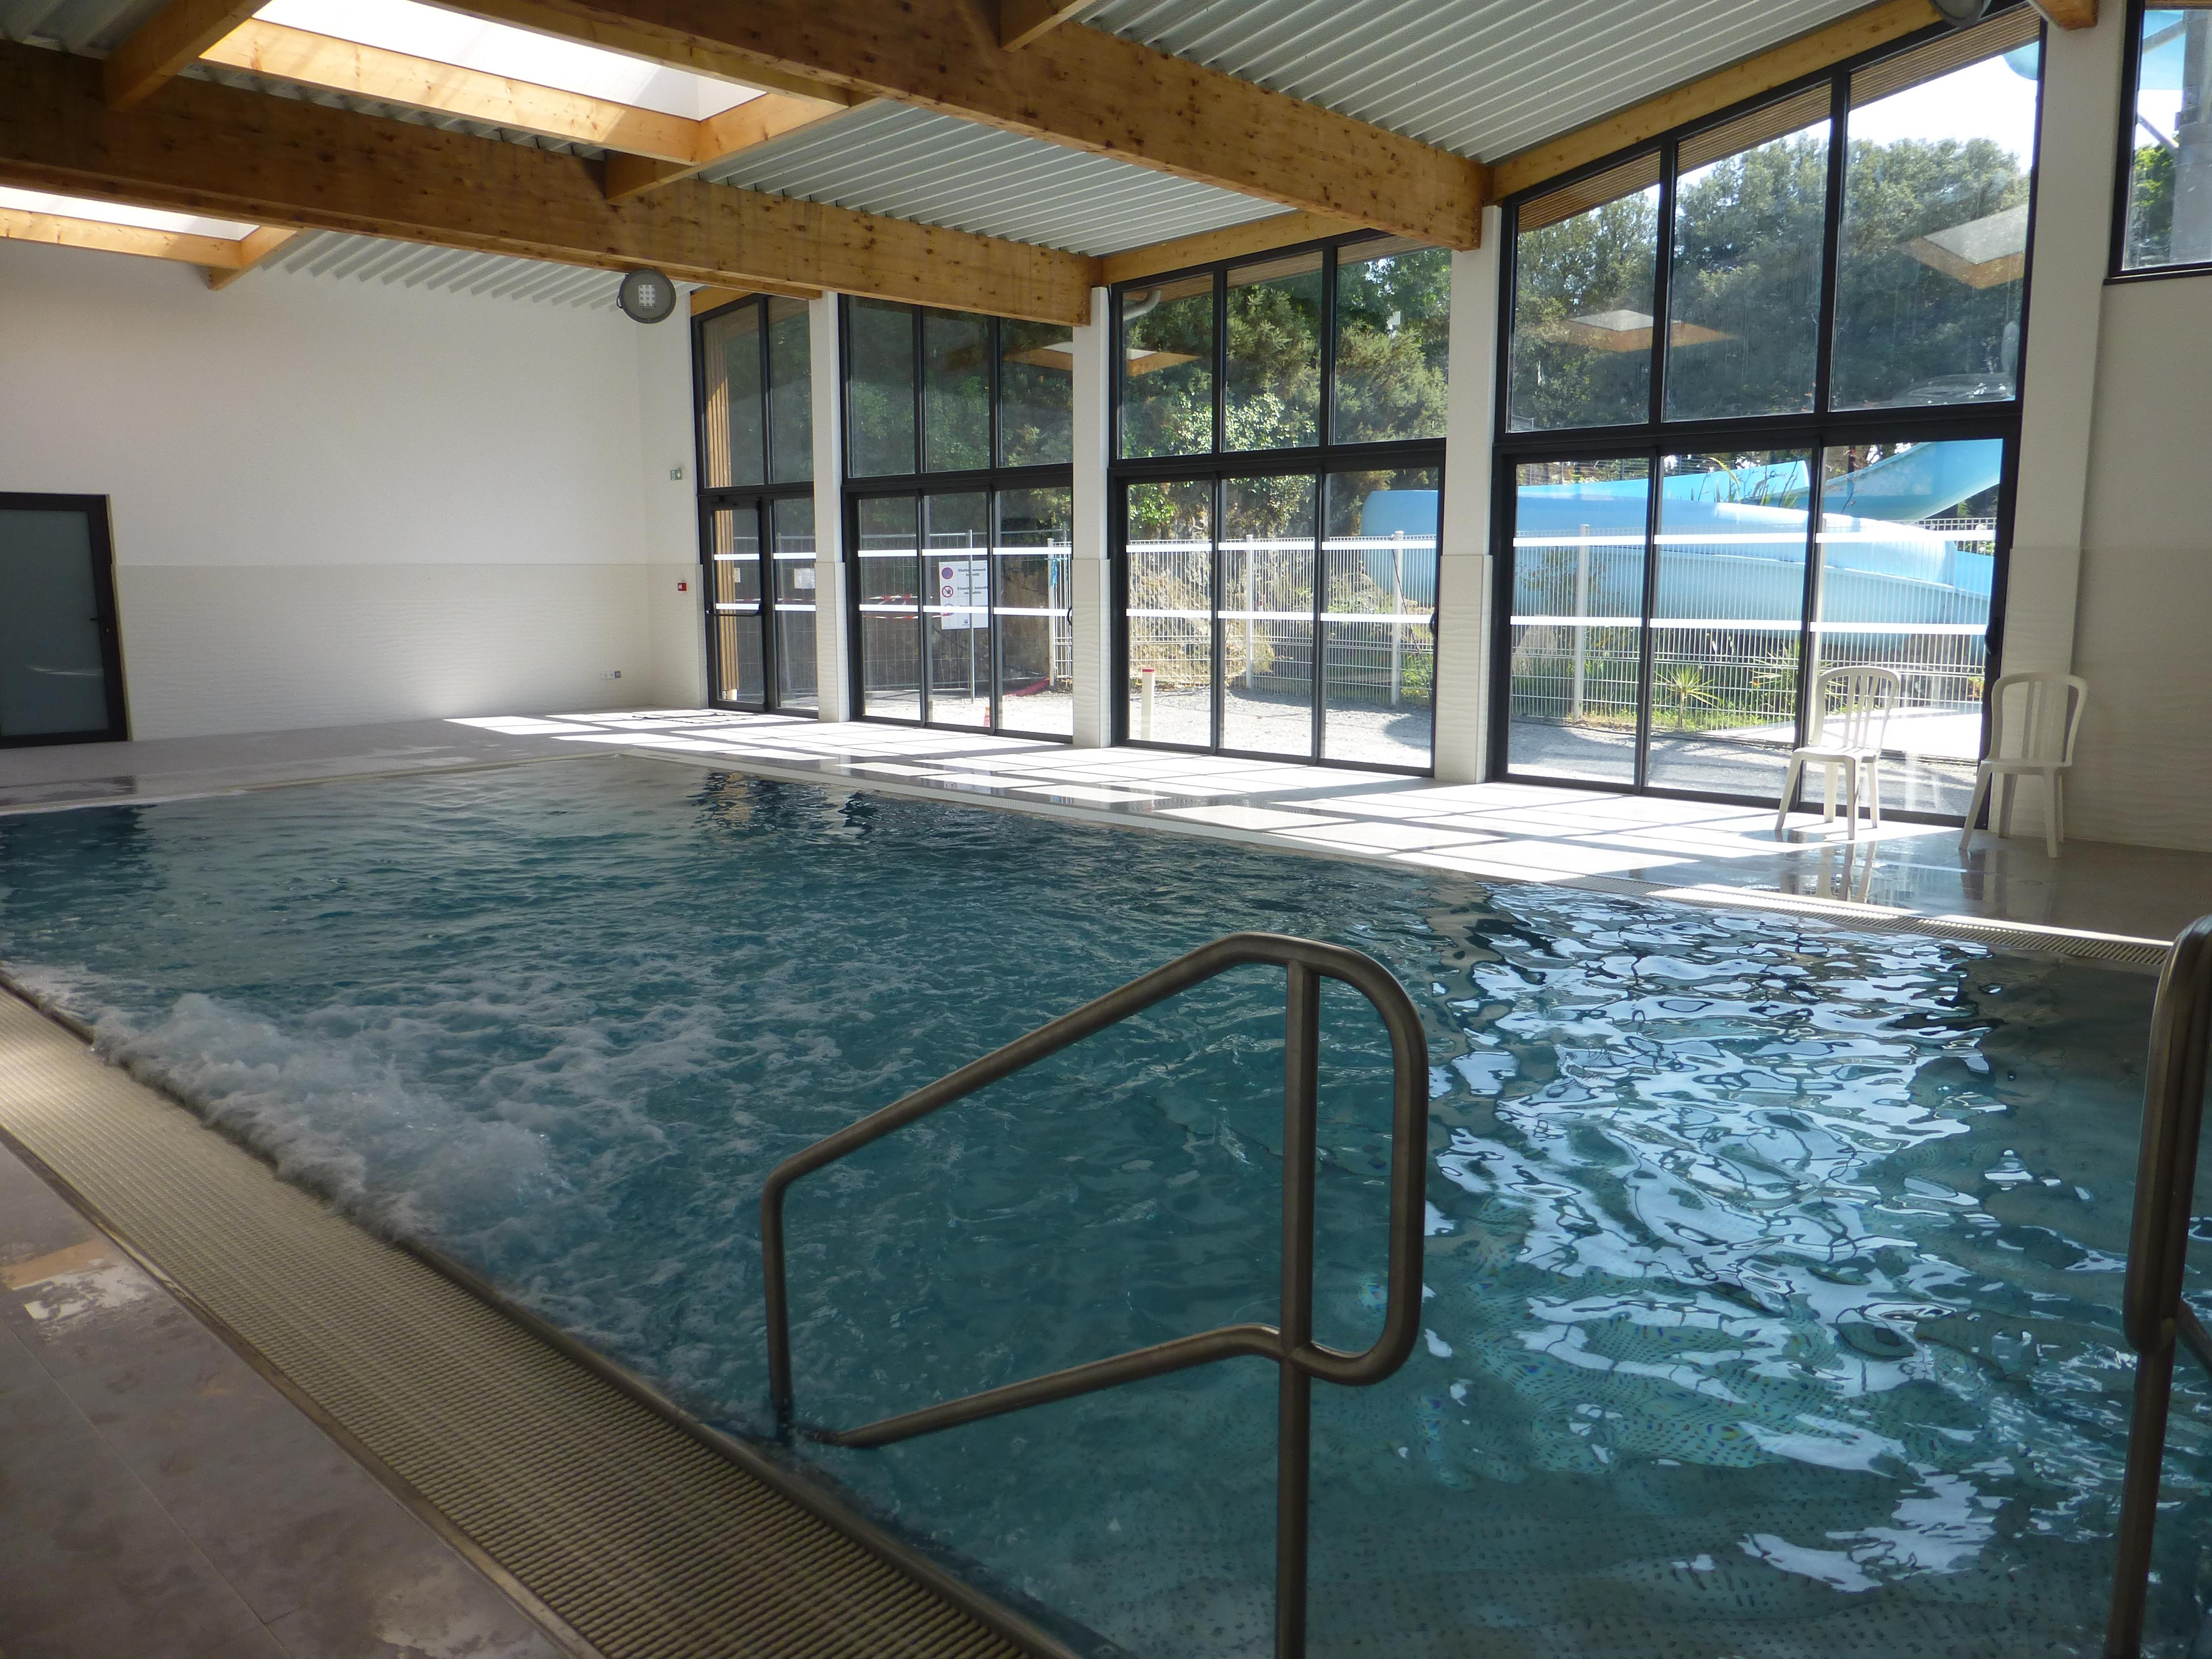 Beautiful la baule pitches rentals with cash piscine la for Cash piscine la roche sur yon telephone